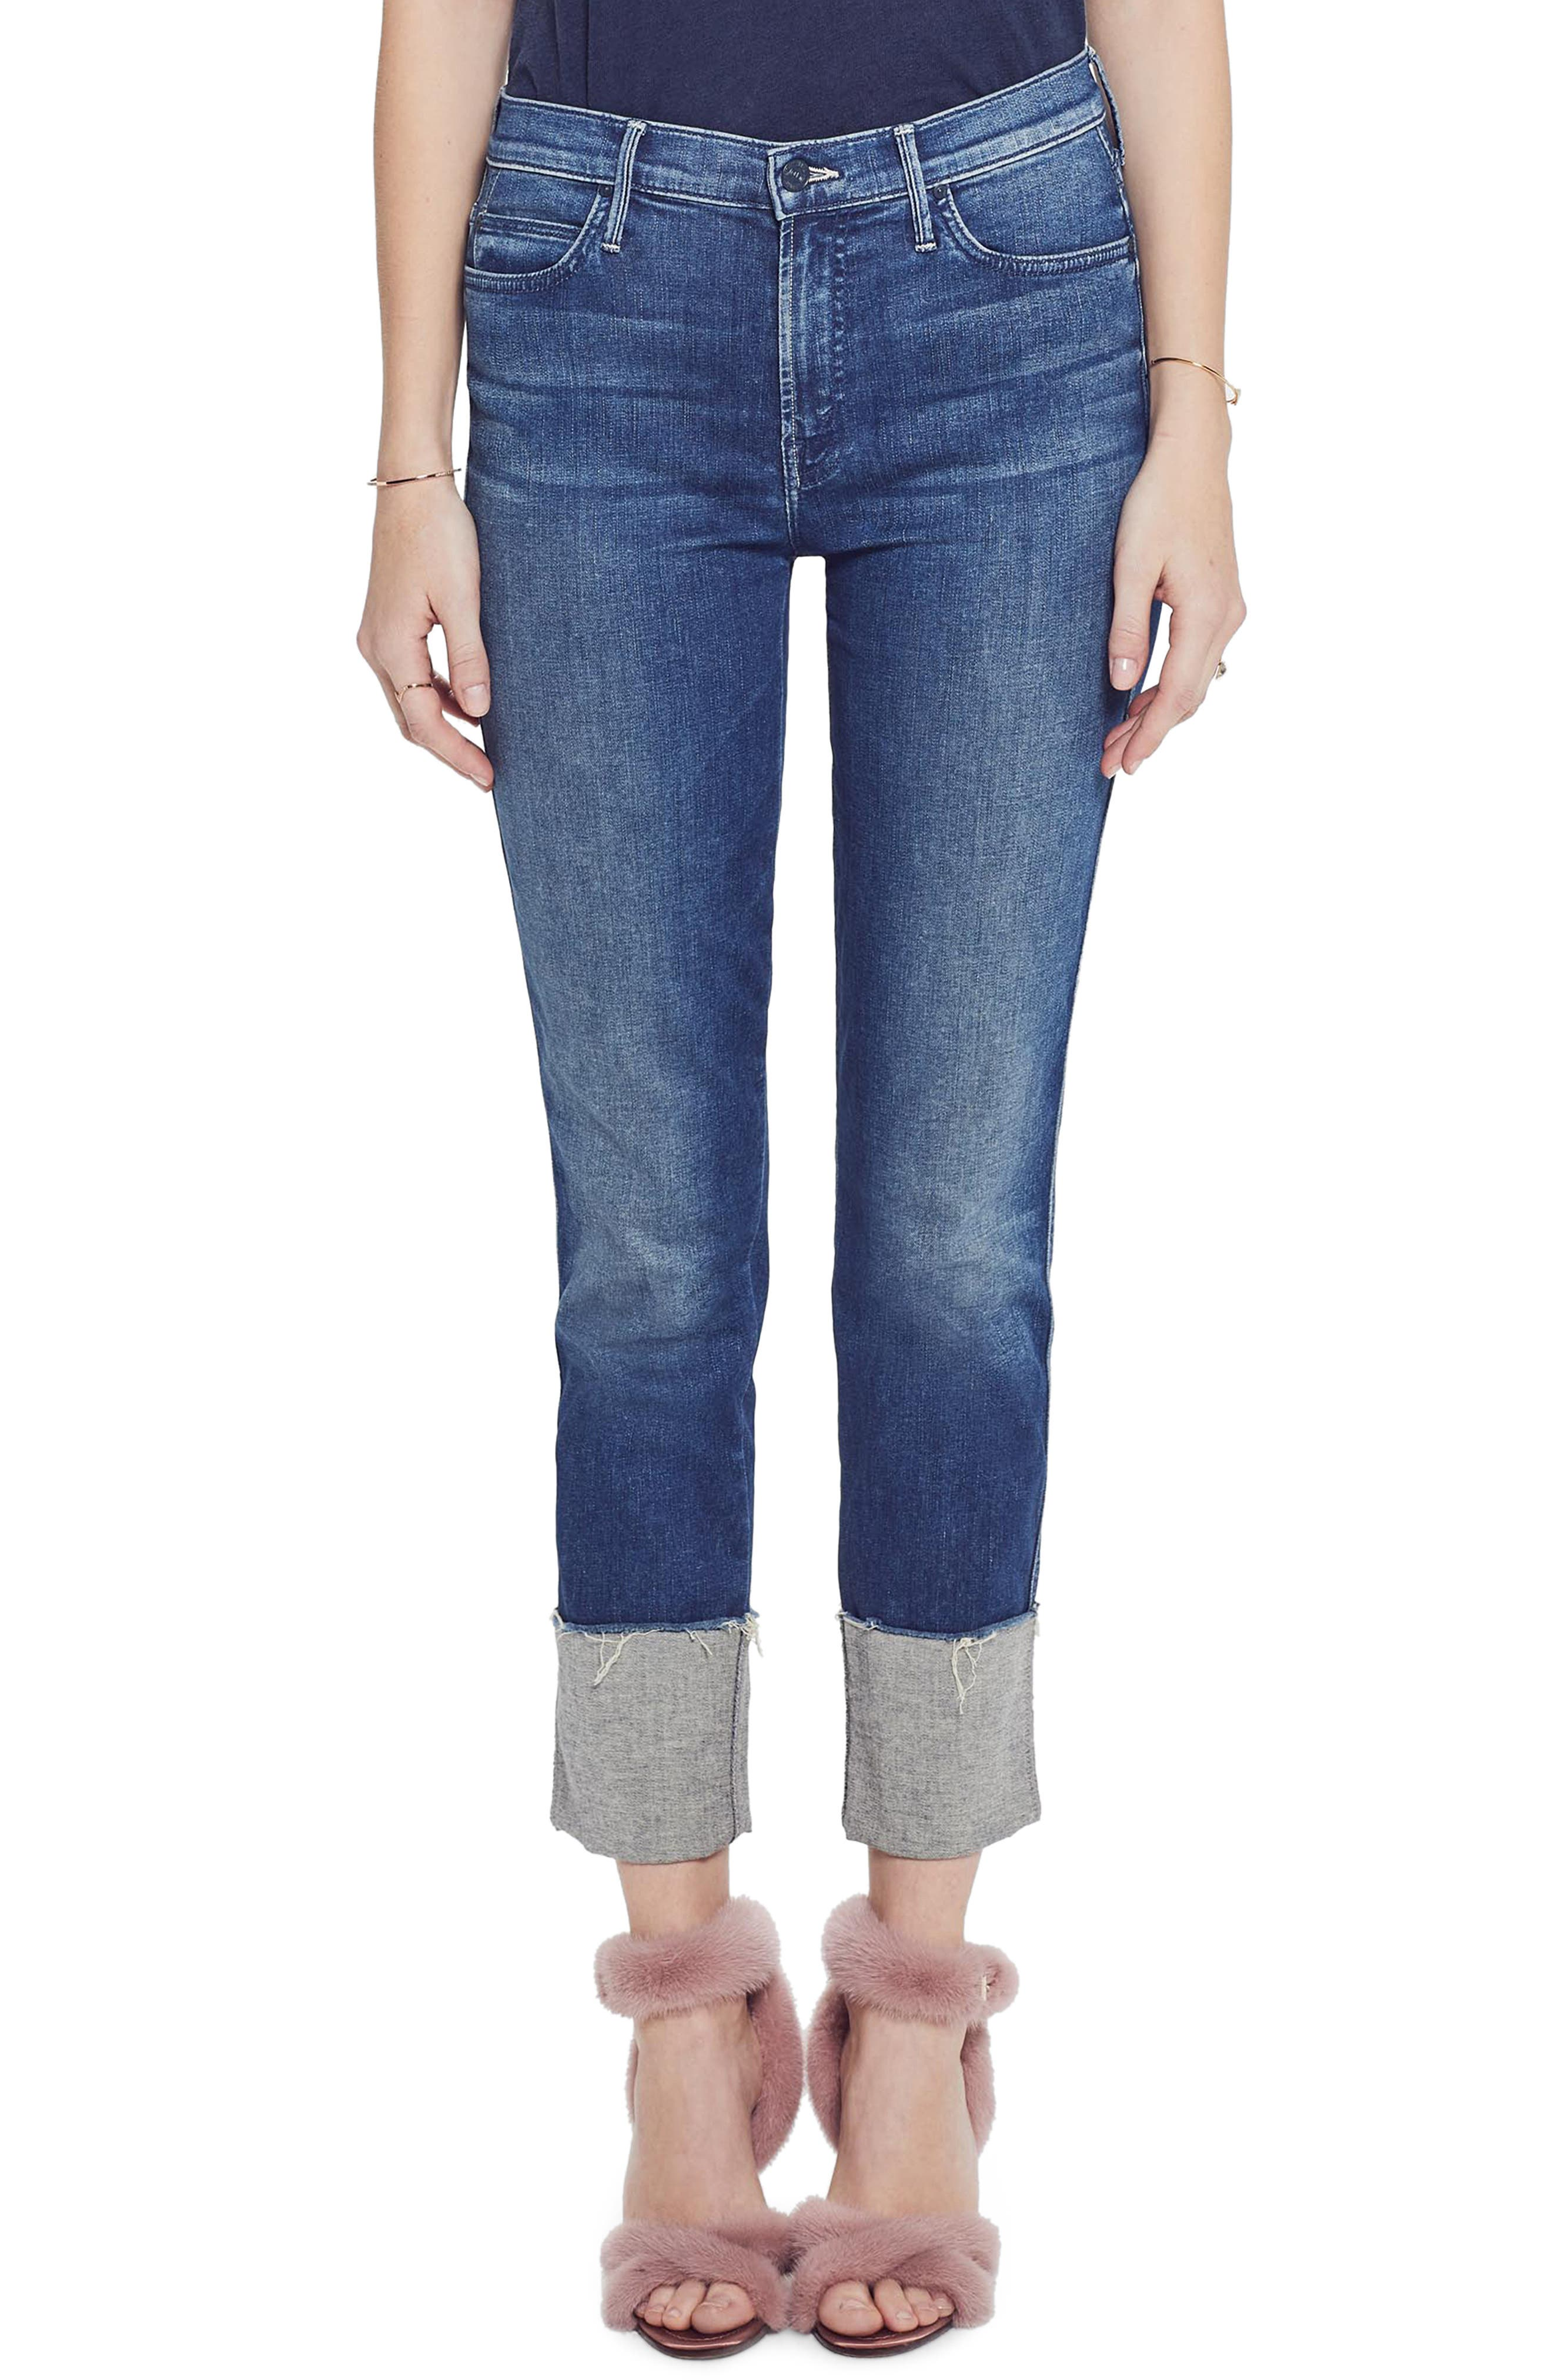 MOTHER, The Pony Boy Frayed Ankle Tapered Jeans, Main thumbnail 1, color, LURE ME IN